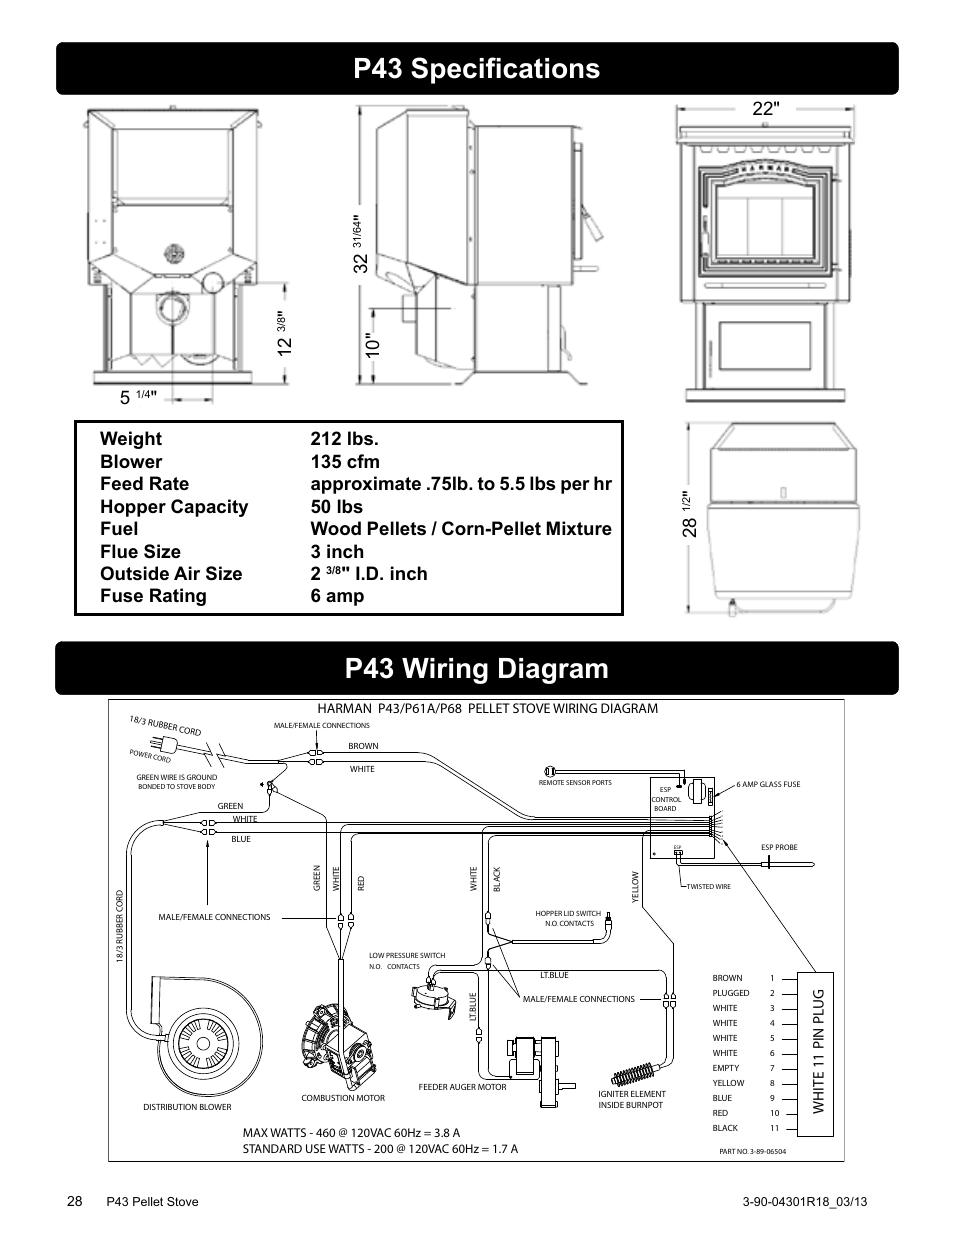 Mercedes Benz C240 Engine Diagram Wiring And Fuse Box 2002 2006 C230 In Addition 2007 C280 Oil Filter Location Further